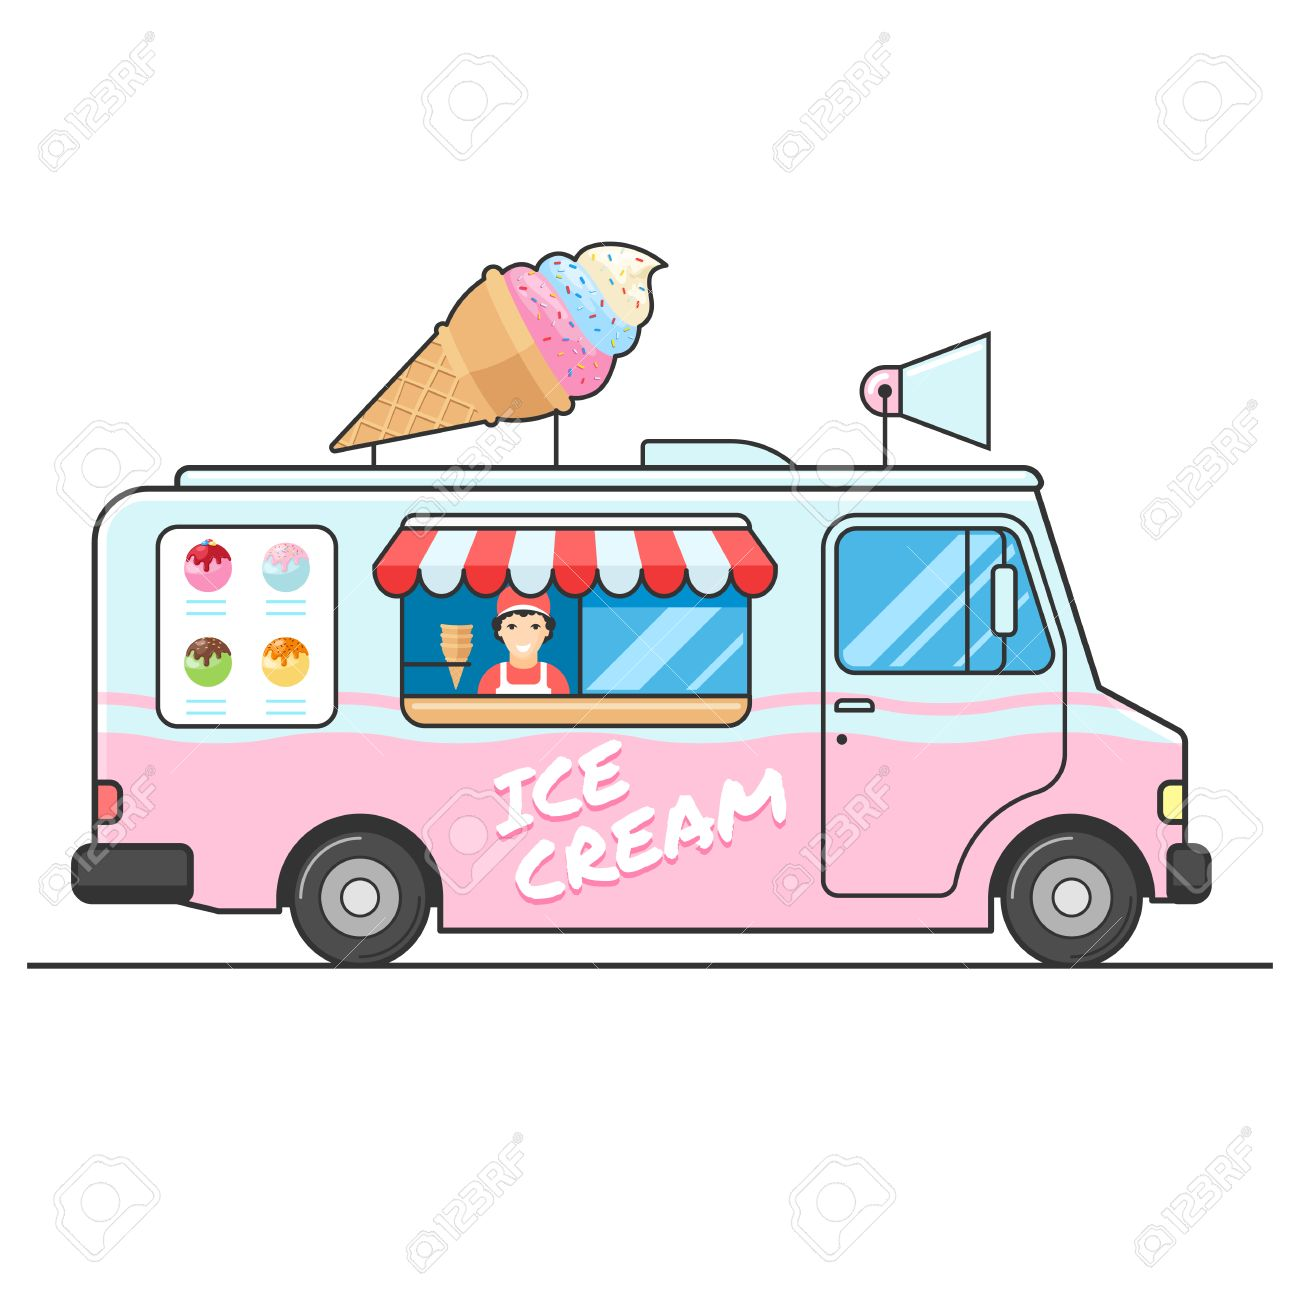 1 975 ice cream truck stock vector illustration and royalty free ice rh 123rf com free ice cream truck clipart Ice Cream Shop Clip Art